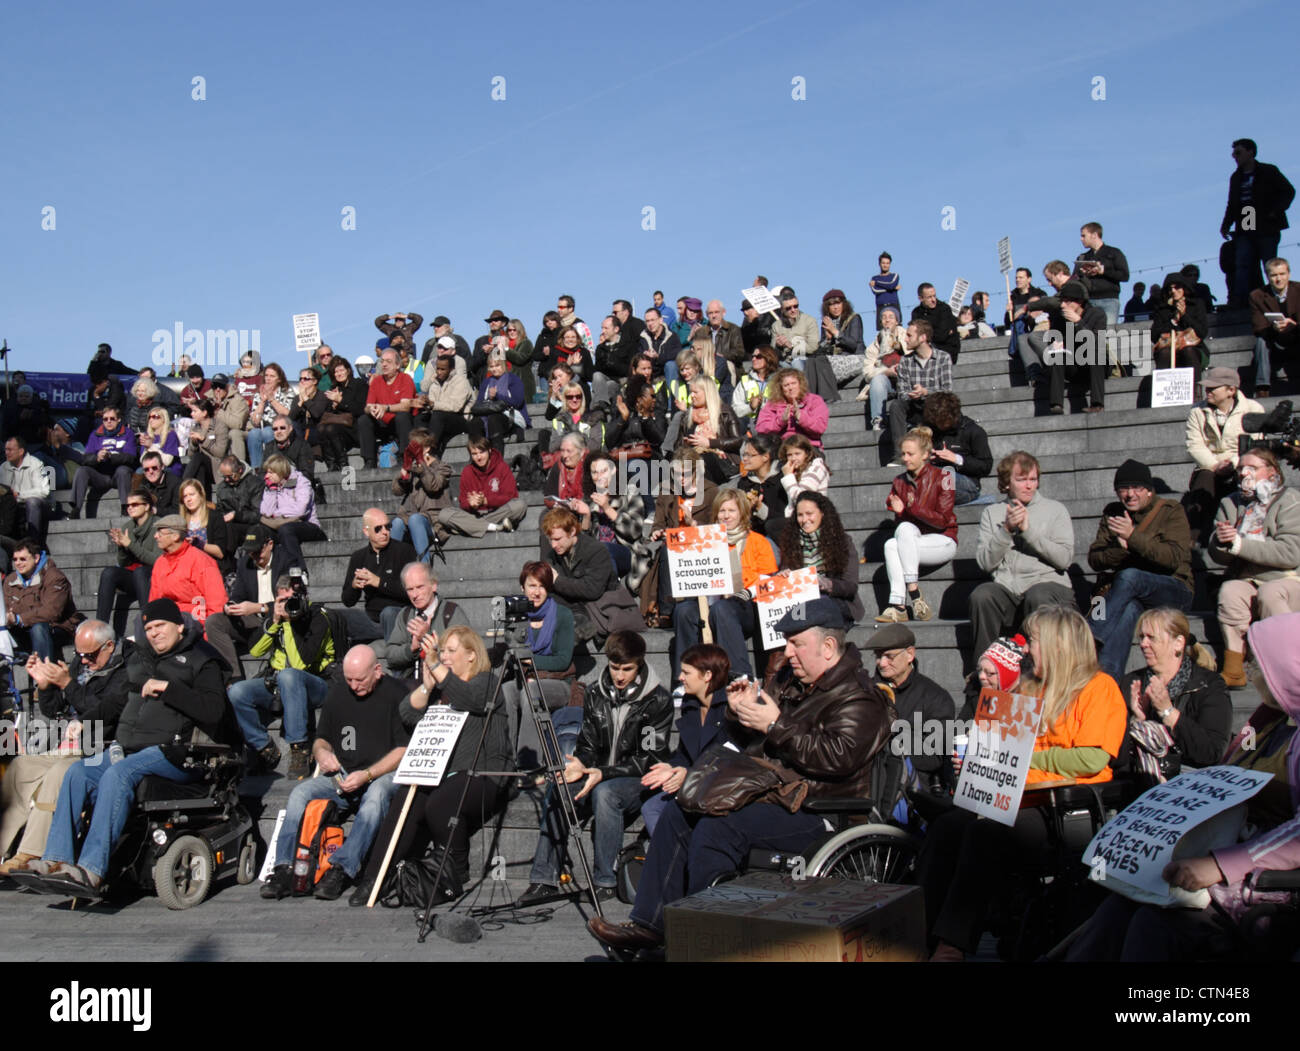 Hardest Hit Campaign 2011, with people protesting against welfare reform cutbacks to disabled people, outside City - Stock Image